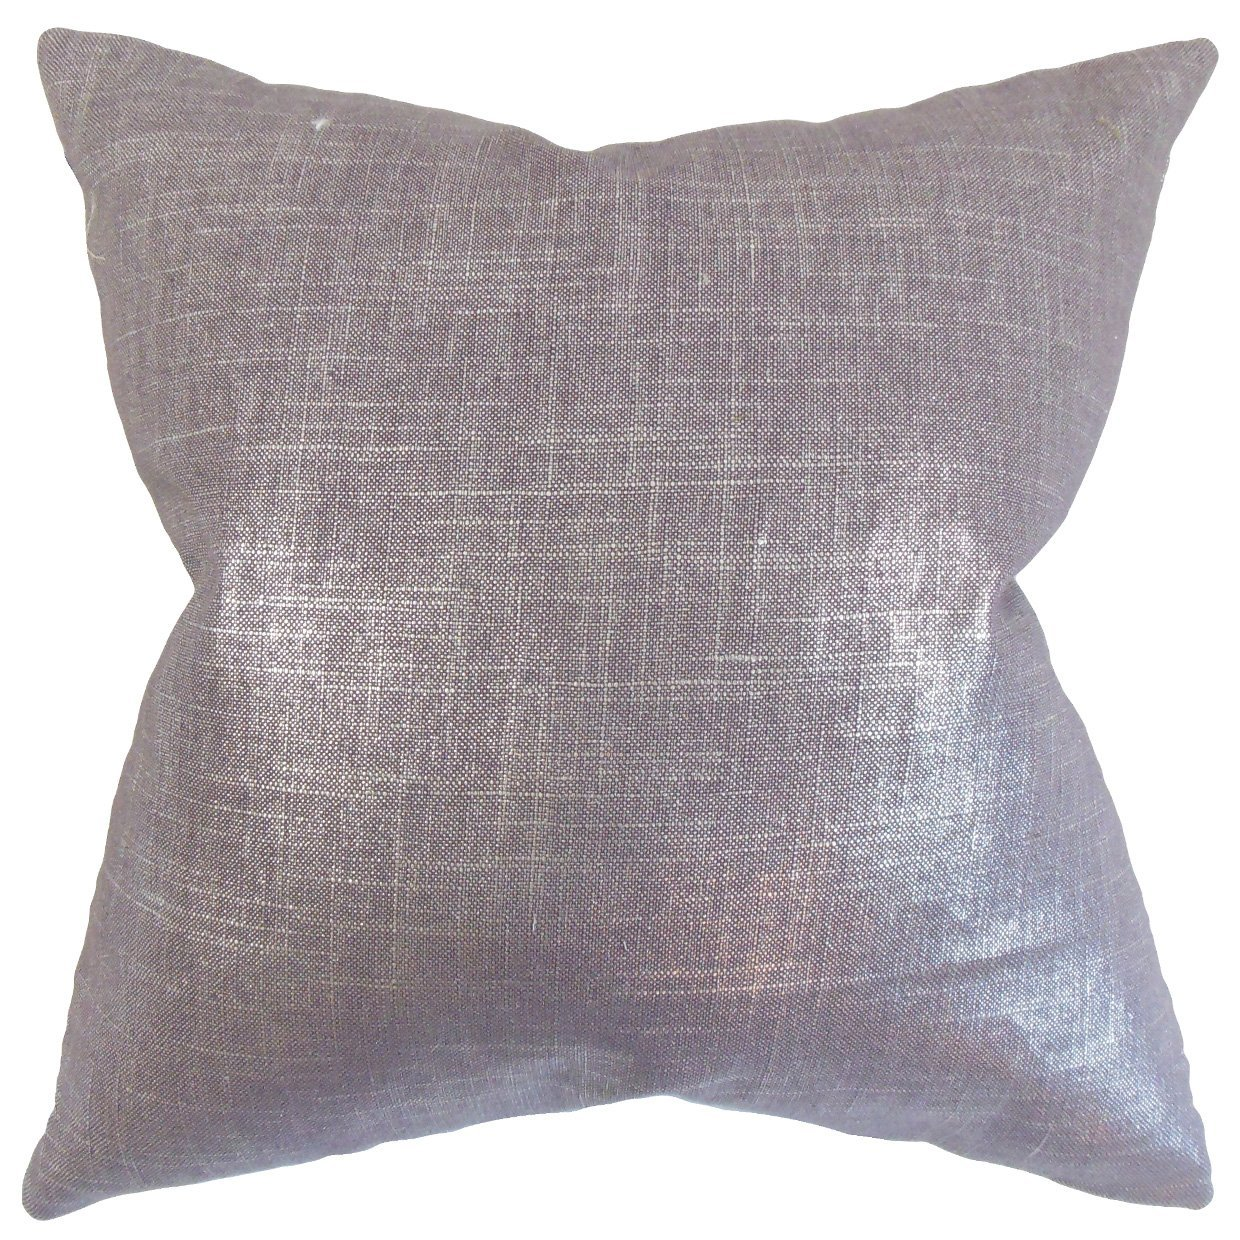 The Pillow Collection Florin Solid Throw Pillow Cover